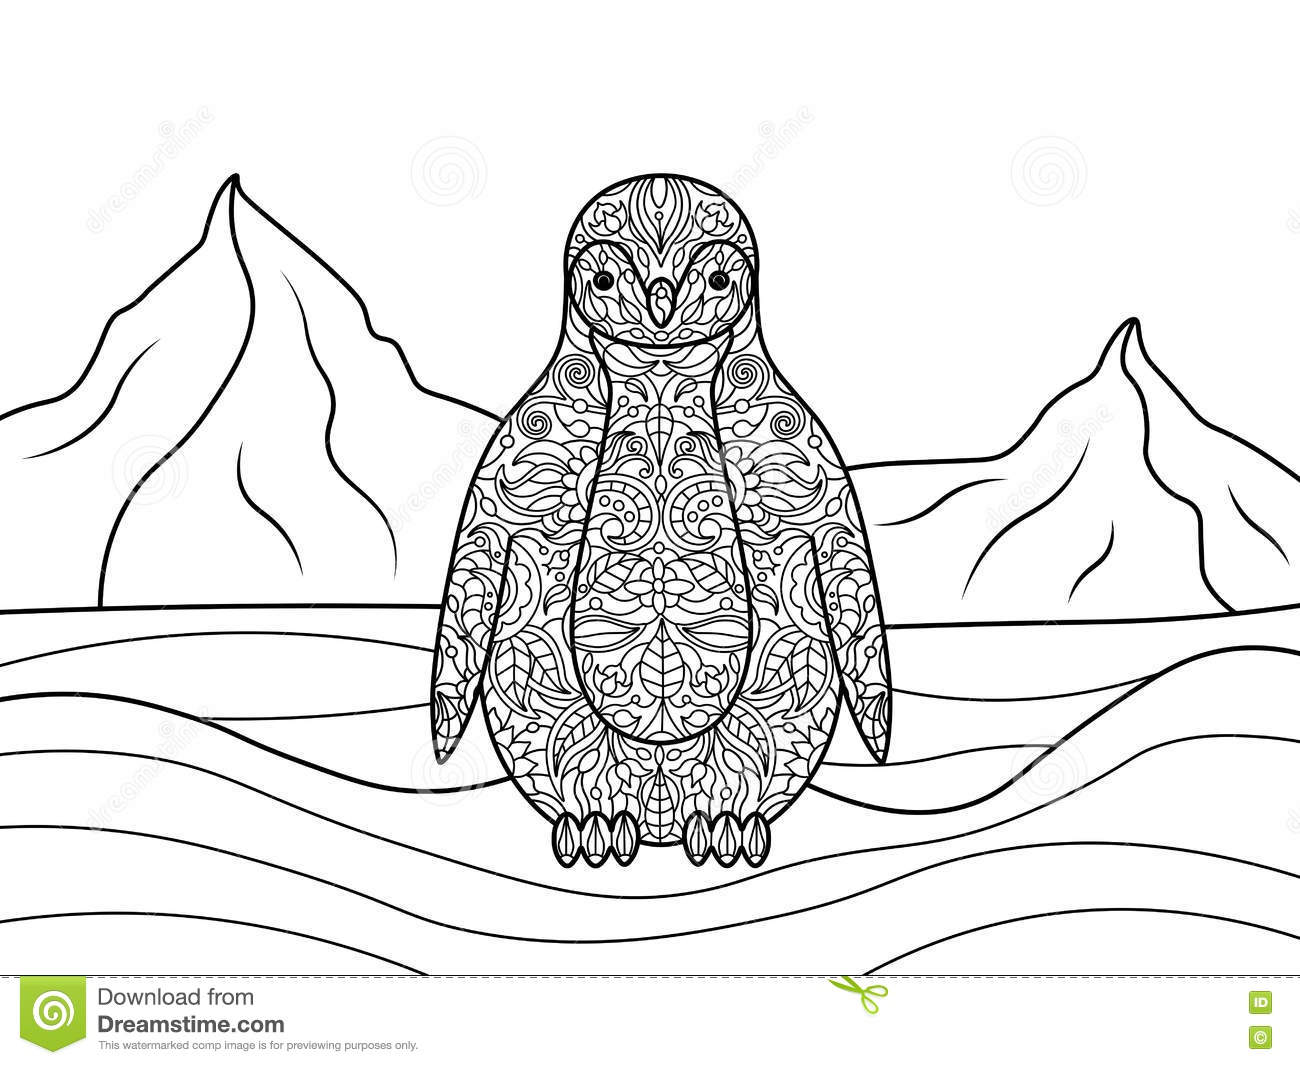 Free Vector Illustration Juniper: Penguin Coloring Book For Adults Vector Stock Vector